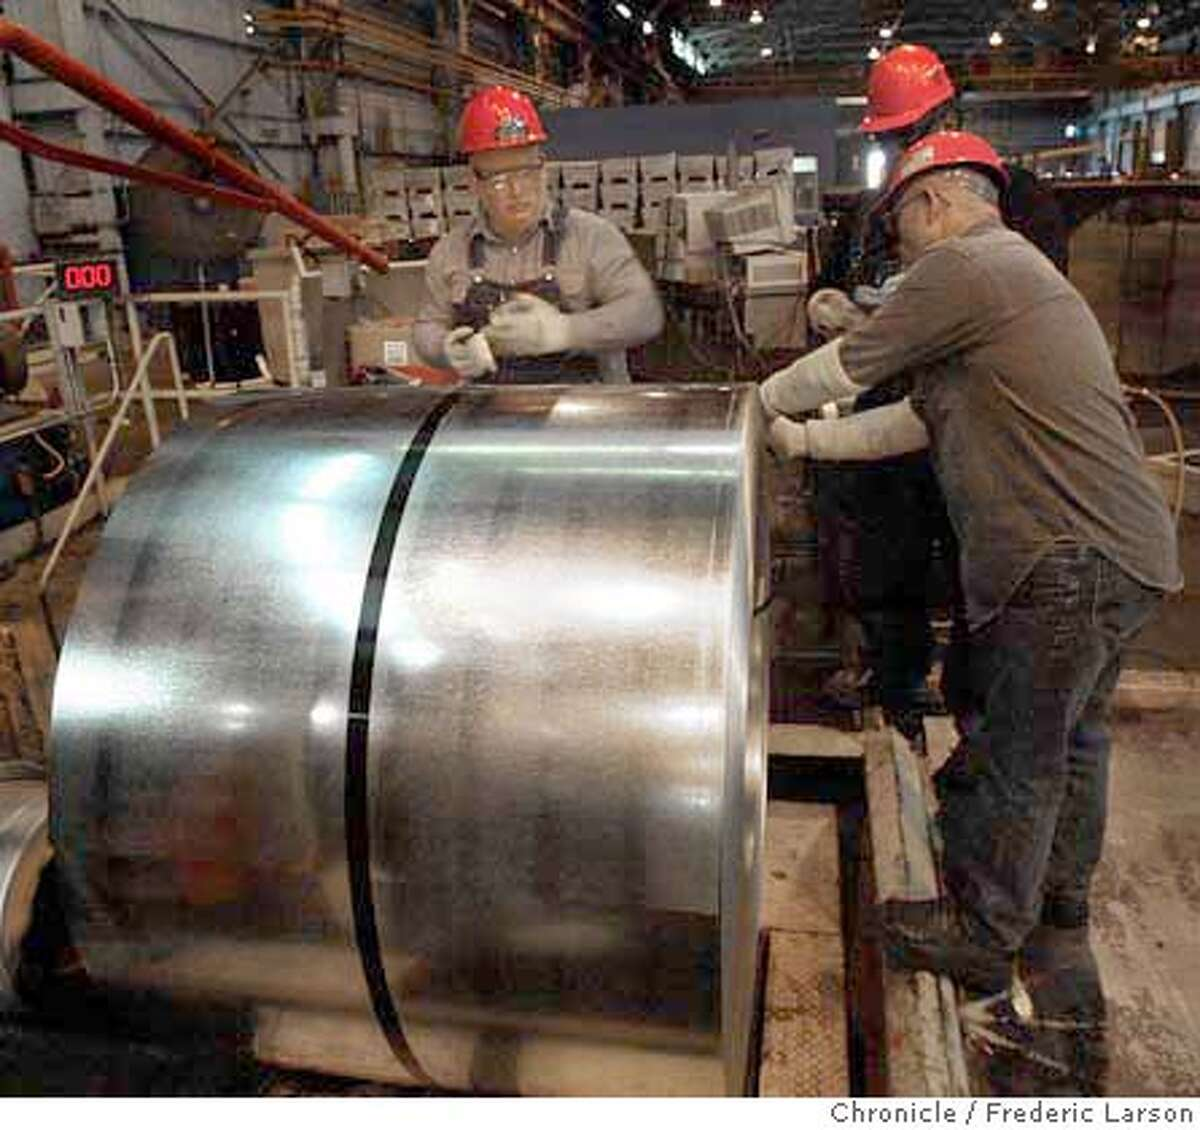 ; John Moglie (left) Scipio Spears and Jerry Sander work on transporting the final coil of steel for shipping. Steel production processes at USS-Posco, a good-sized, ultra-modern steel plant in Pittsburg, City:� Day}/ The Chronicle;